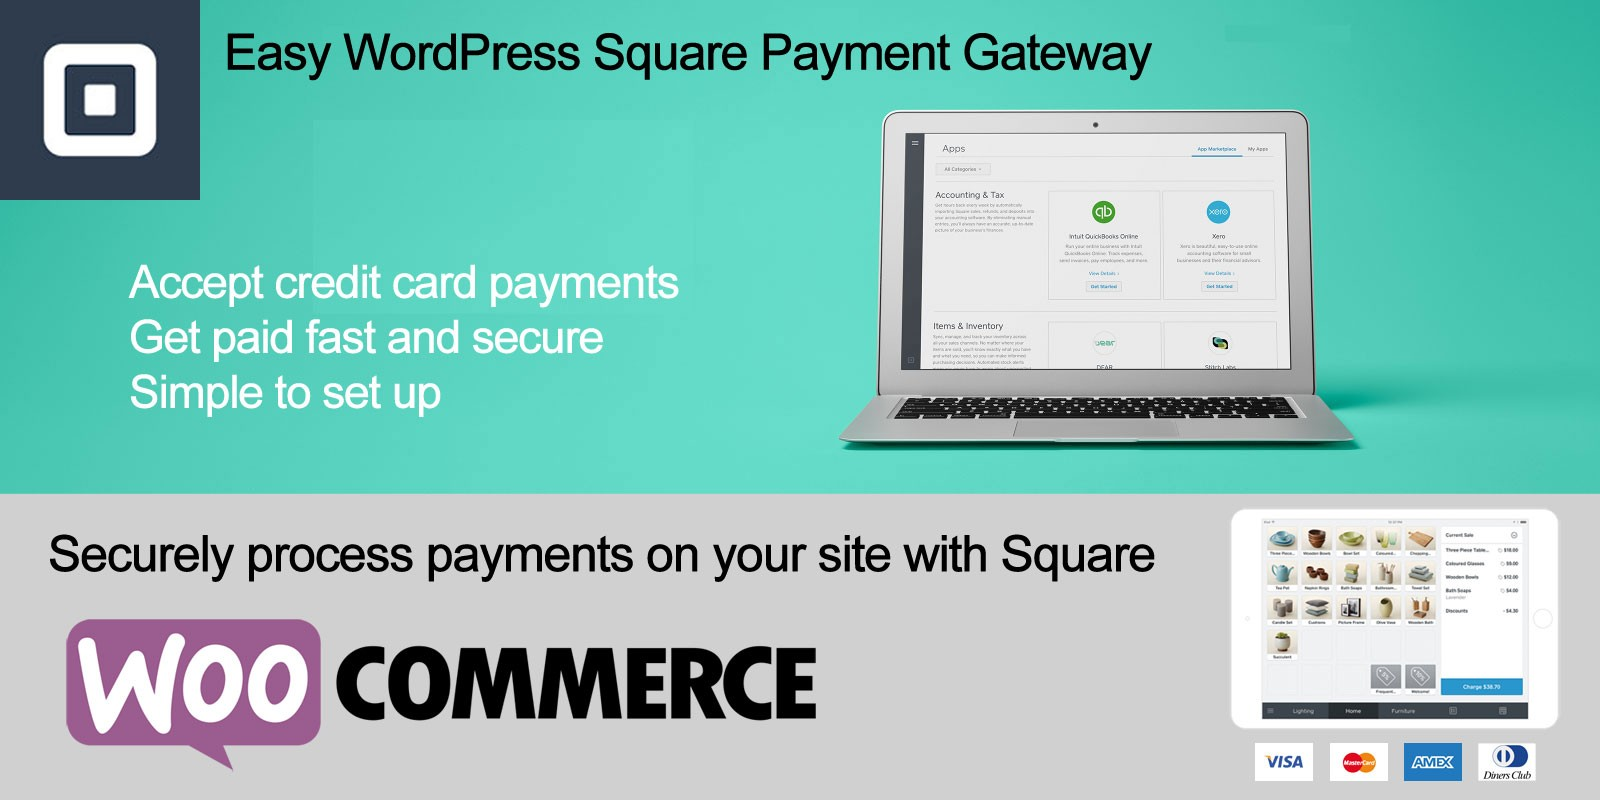 Easy WordPress Square Payment Gateway